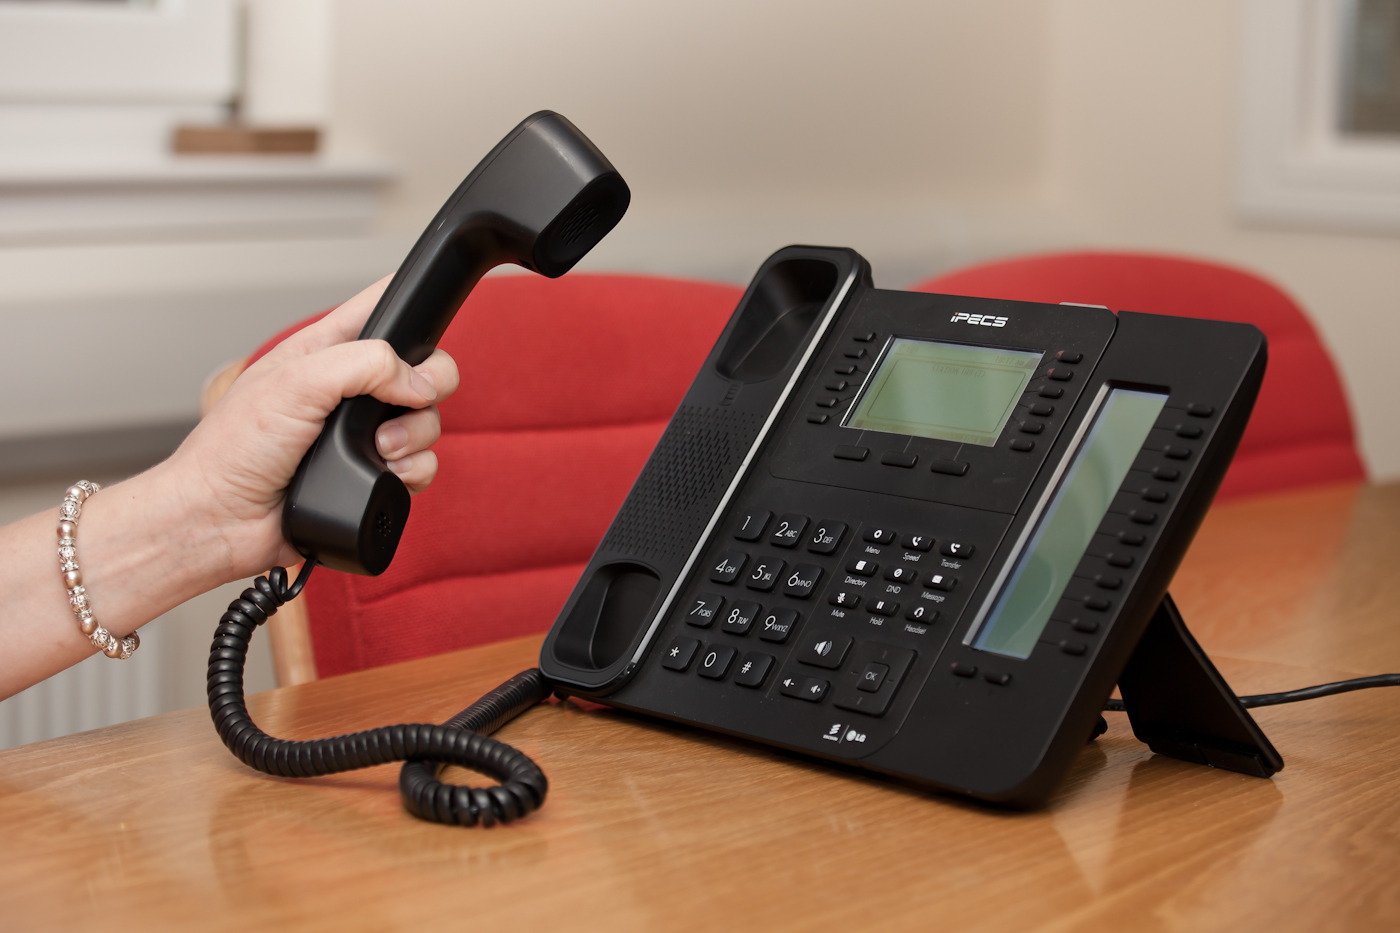 Save on your phone bills   with our Calls, Lines and Broadband Packages